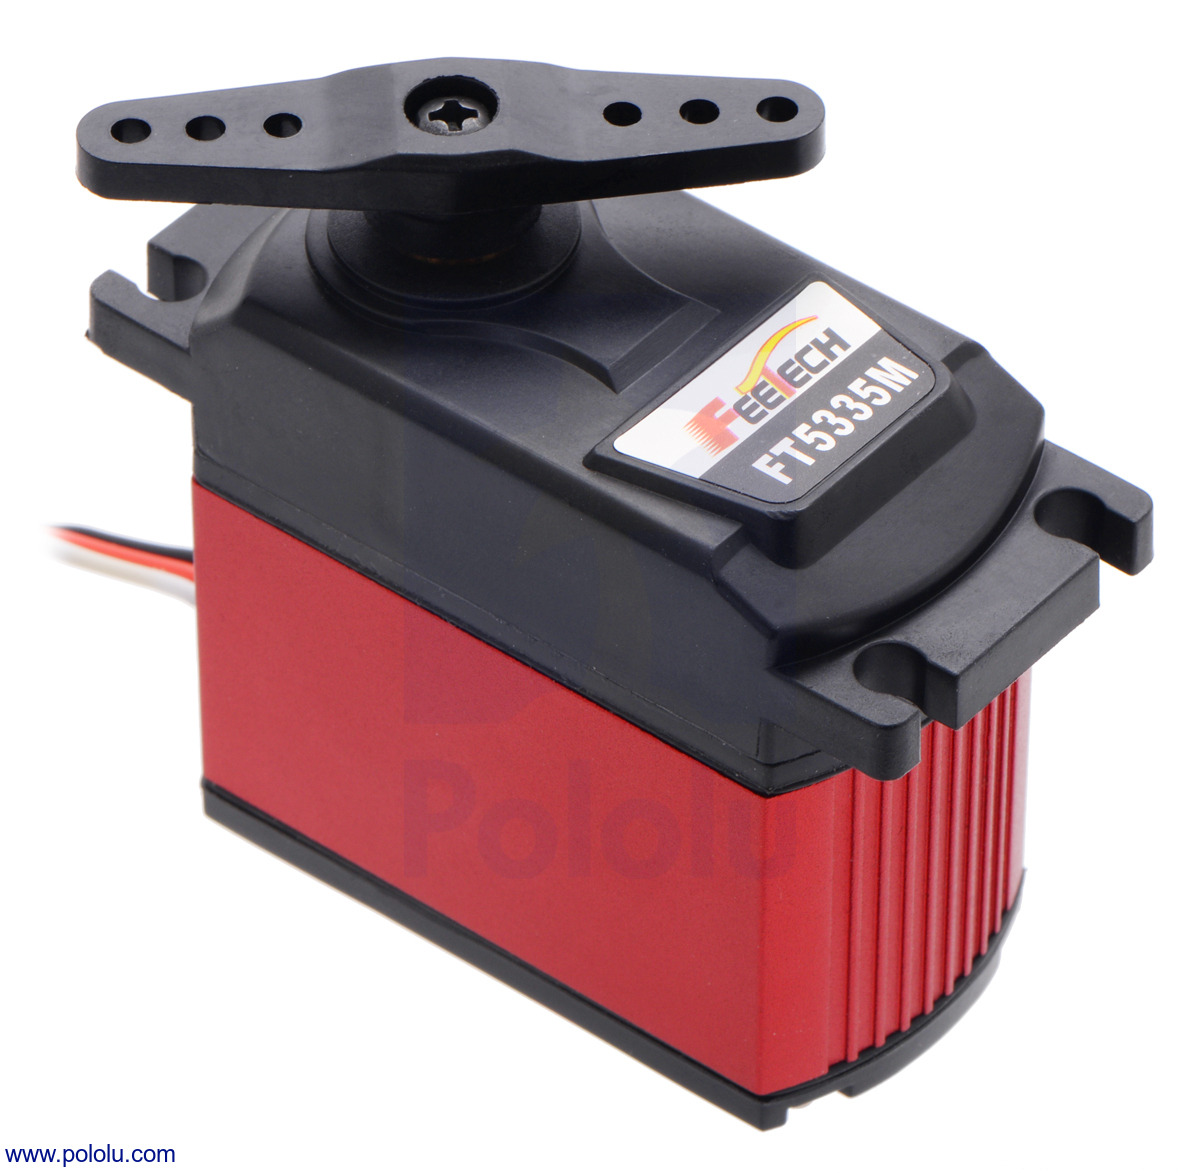 Pololu Posts By Ryan Page 3 Raspberry Pi Wiringpi Servo We Added The Feetech Ultra High Torque Voltage Digital Giant Ft5335m To Our Expanding Rc Selection This Scale Can